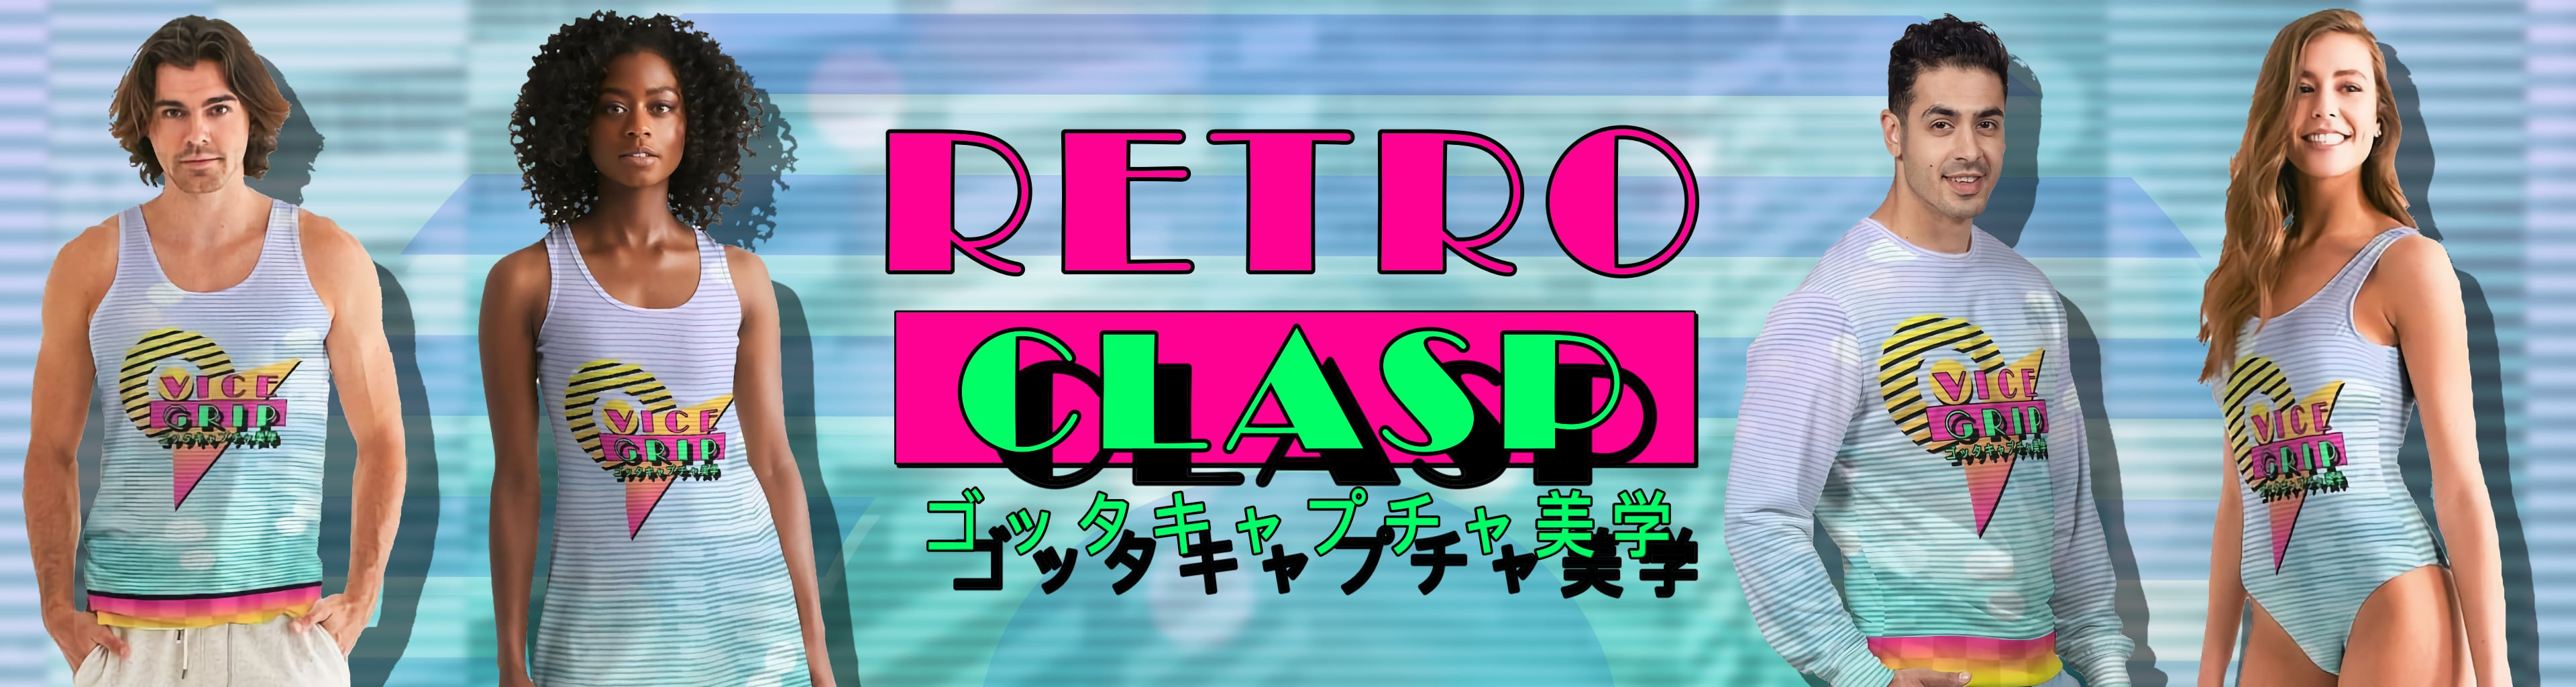 Retro Clasp Collection Banner